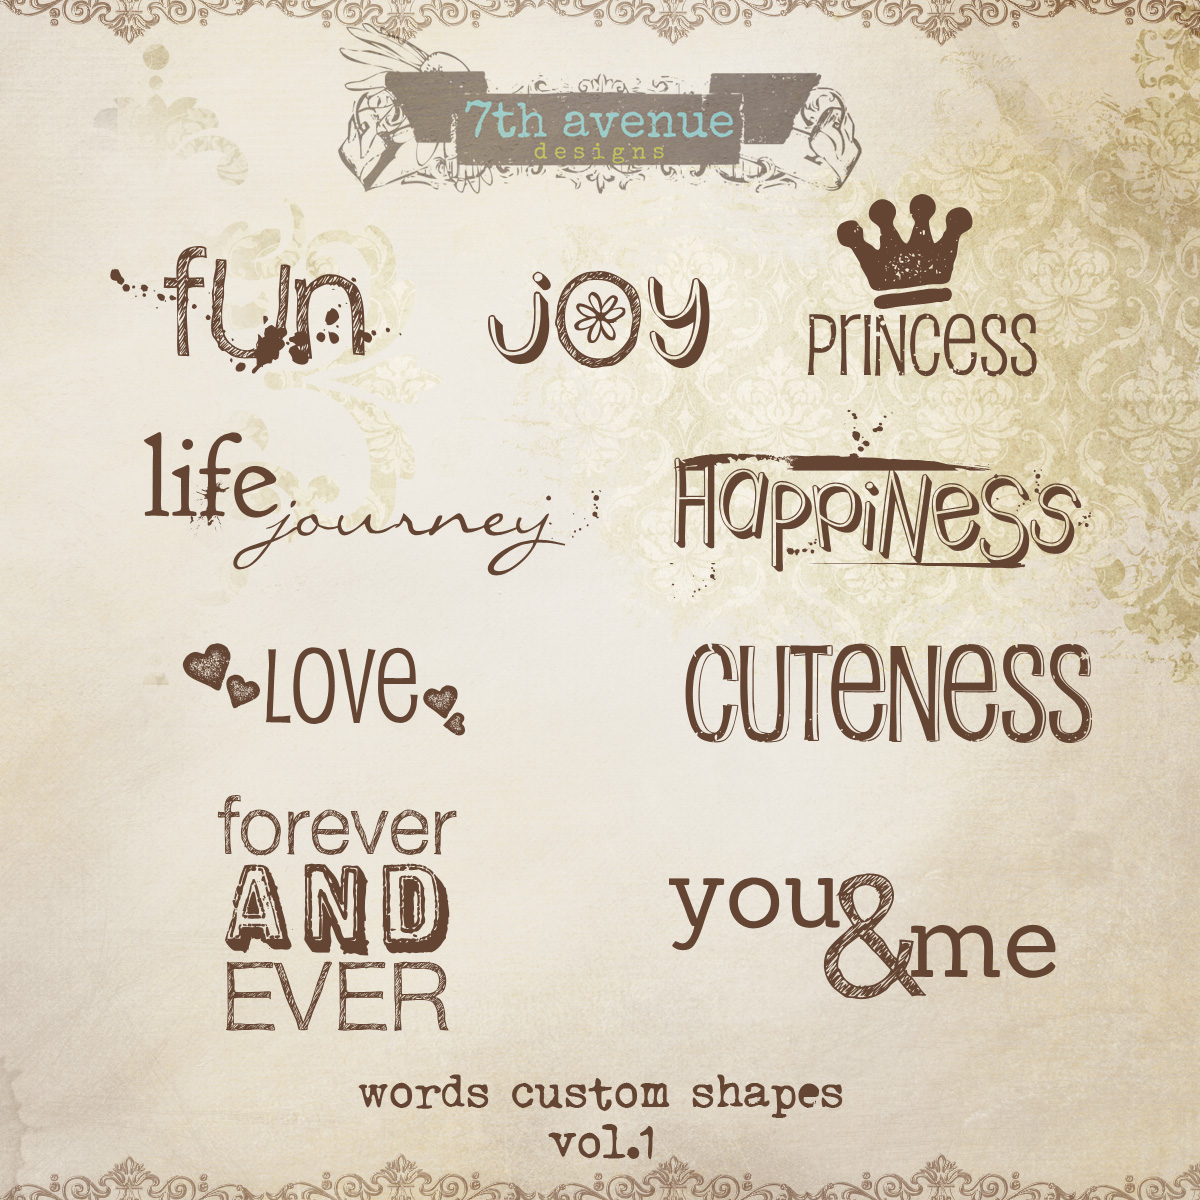 Words Custom Shapes Overlay vol.1